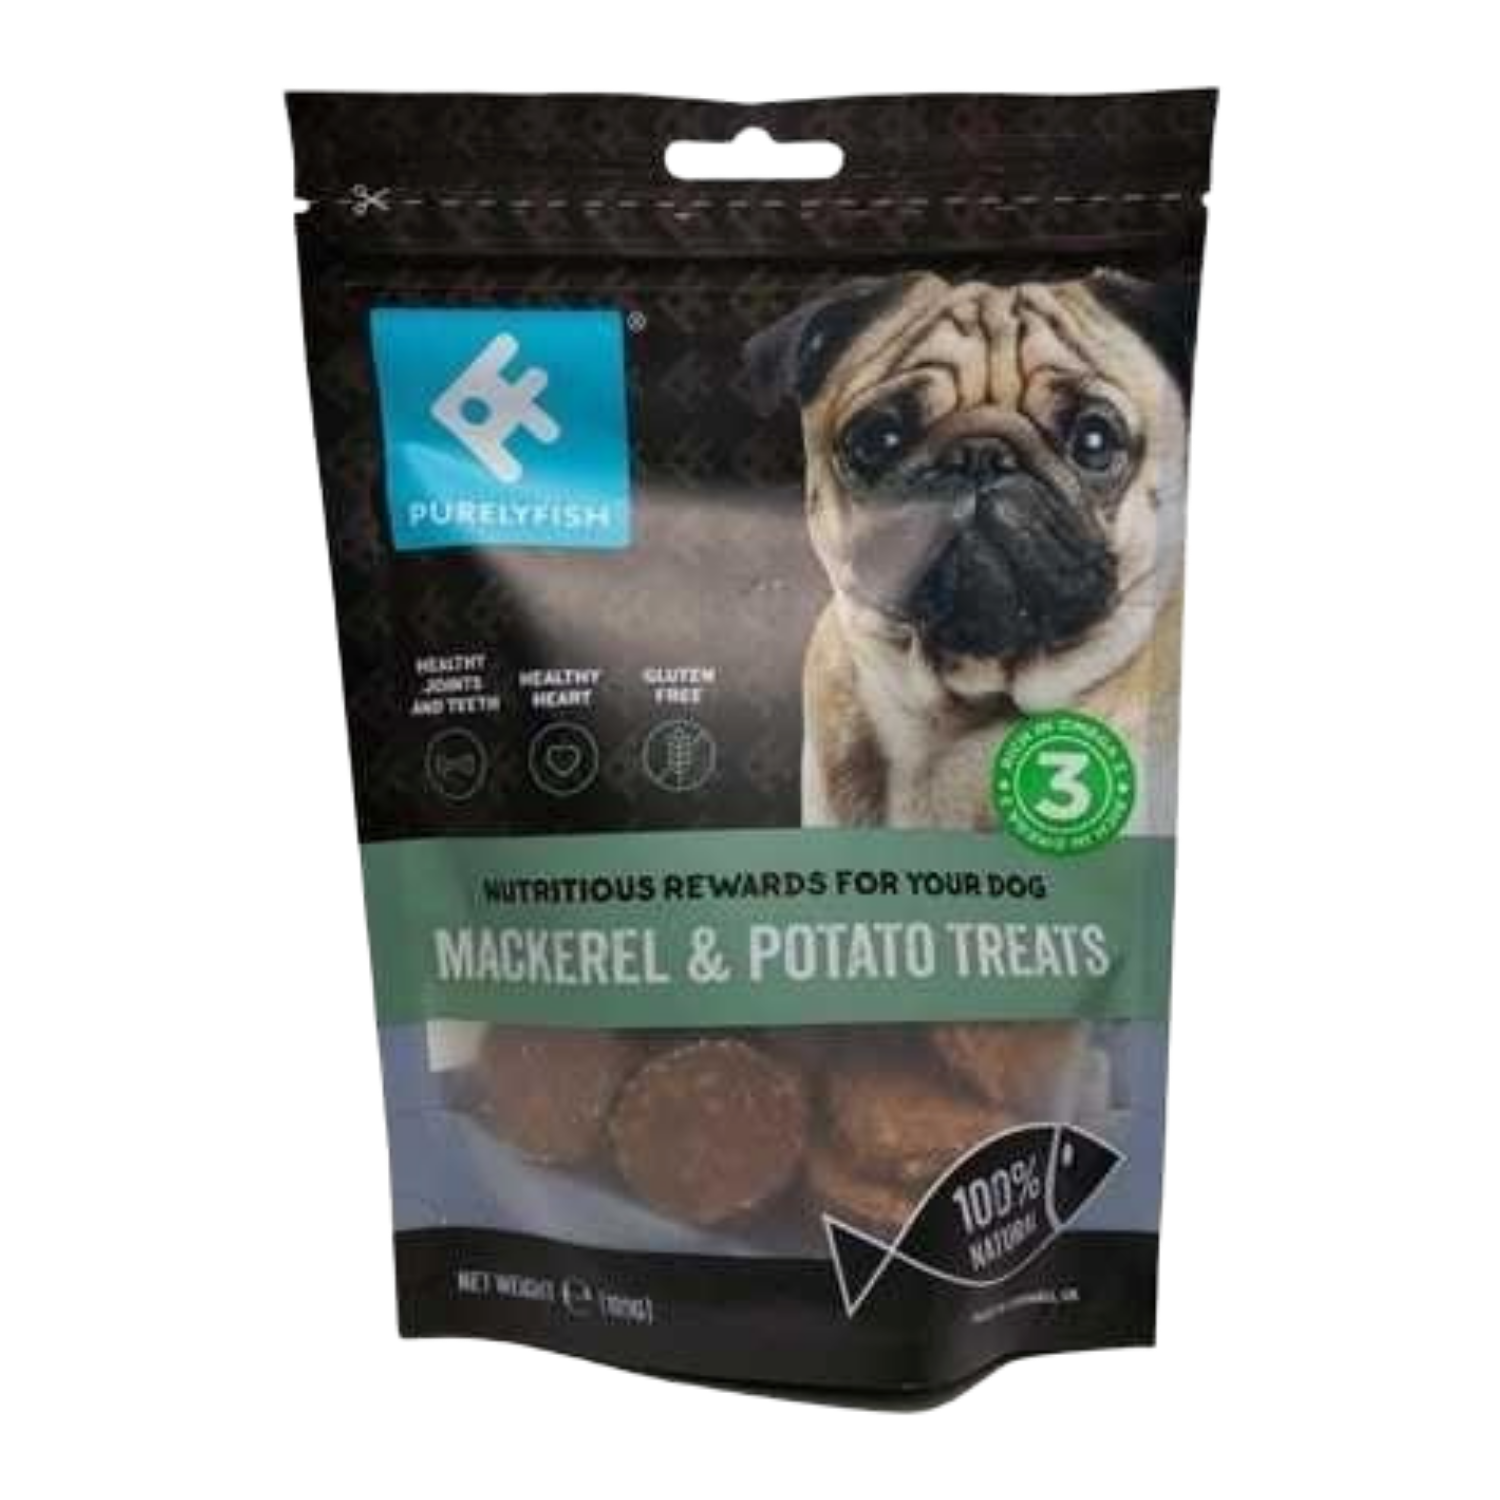 PurelyFish (Mackerel & Potato) Treats for Dogs - 100g